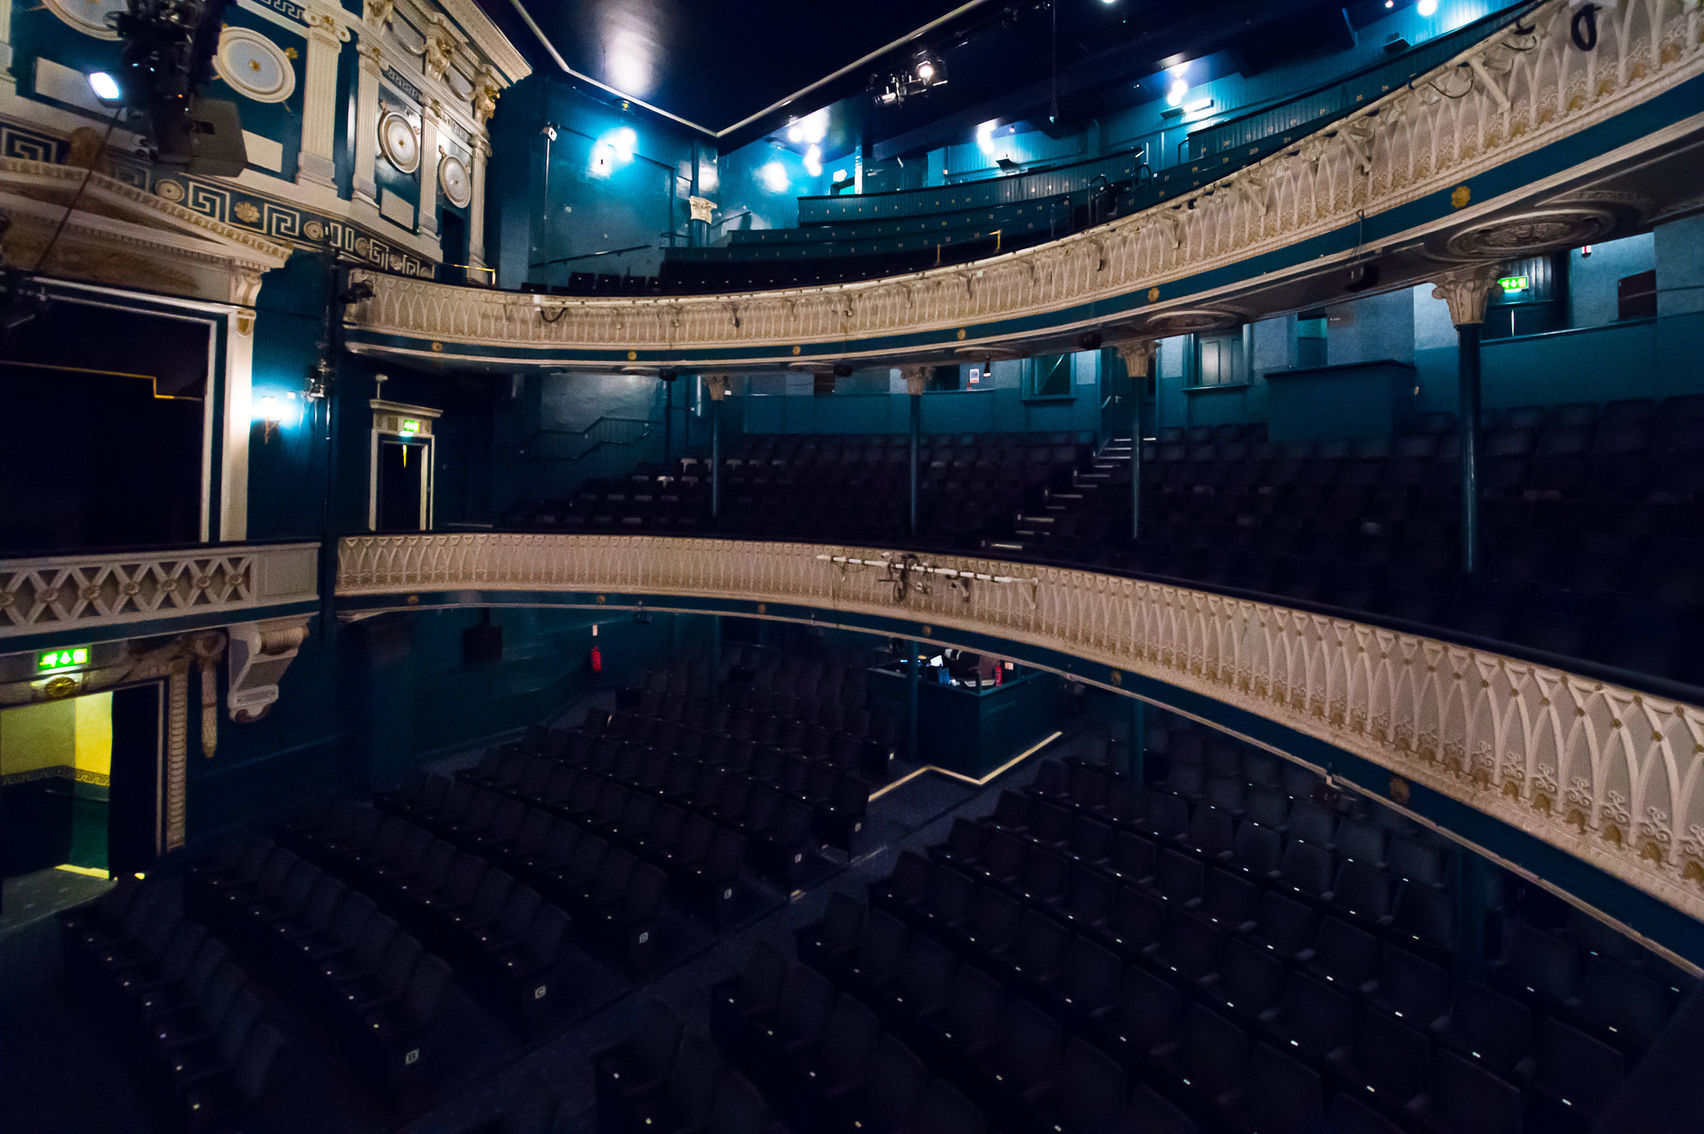 Auditorium, Playhouse Theatre